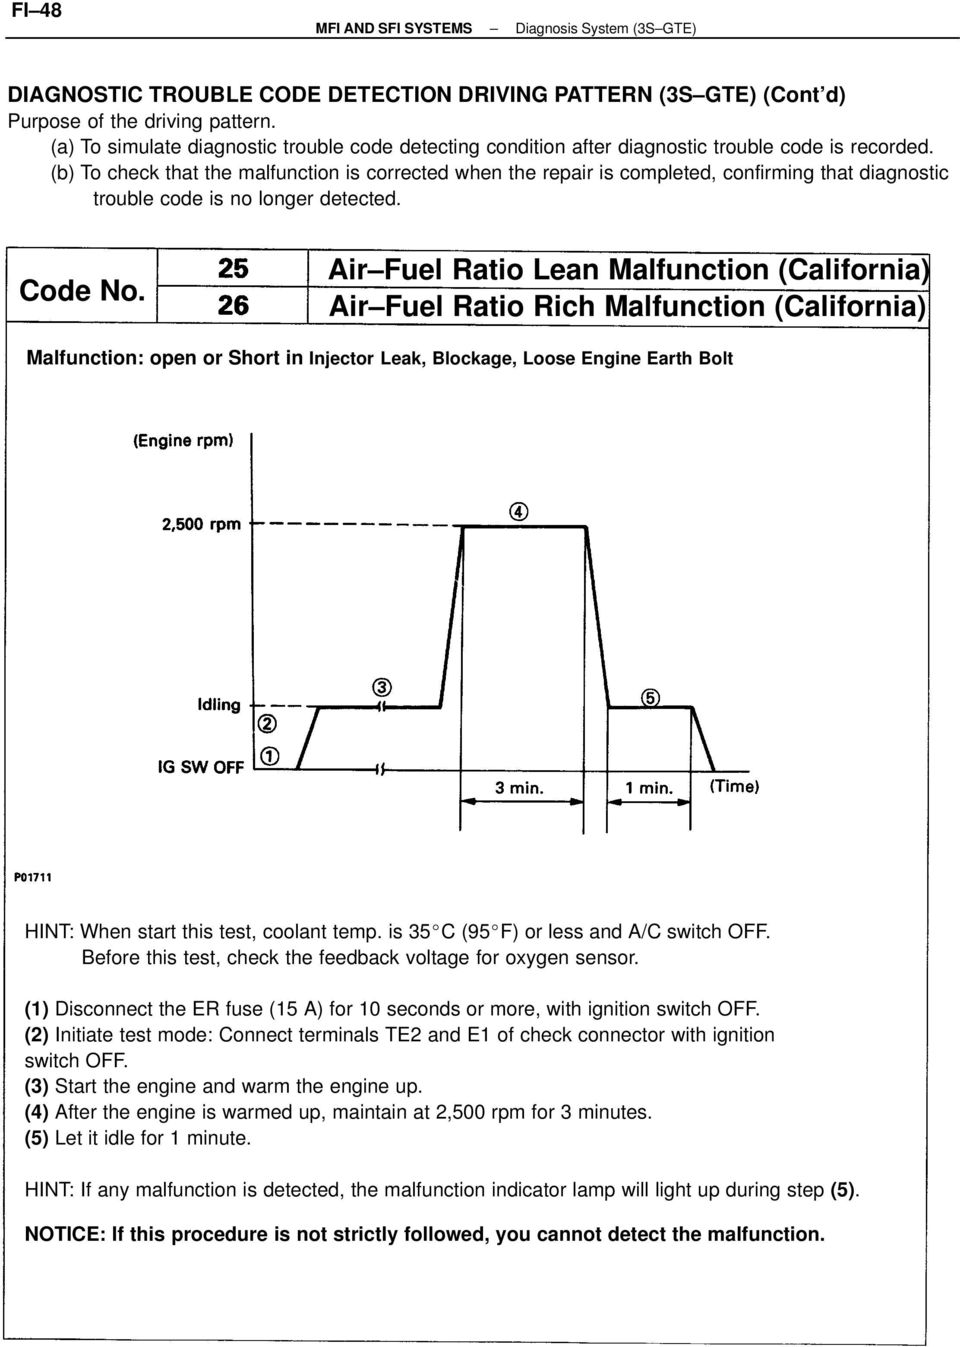 Toyota Sienna Service Manual: Insufficient Coolant Temperature for Closed Loop Fuel Control